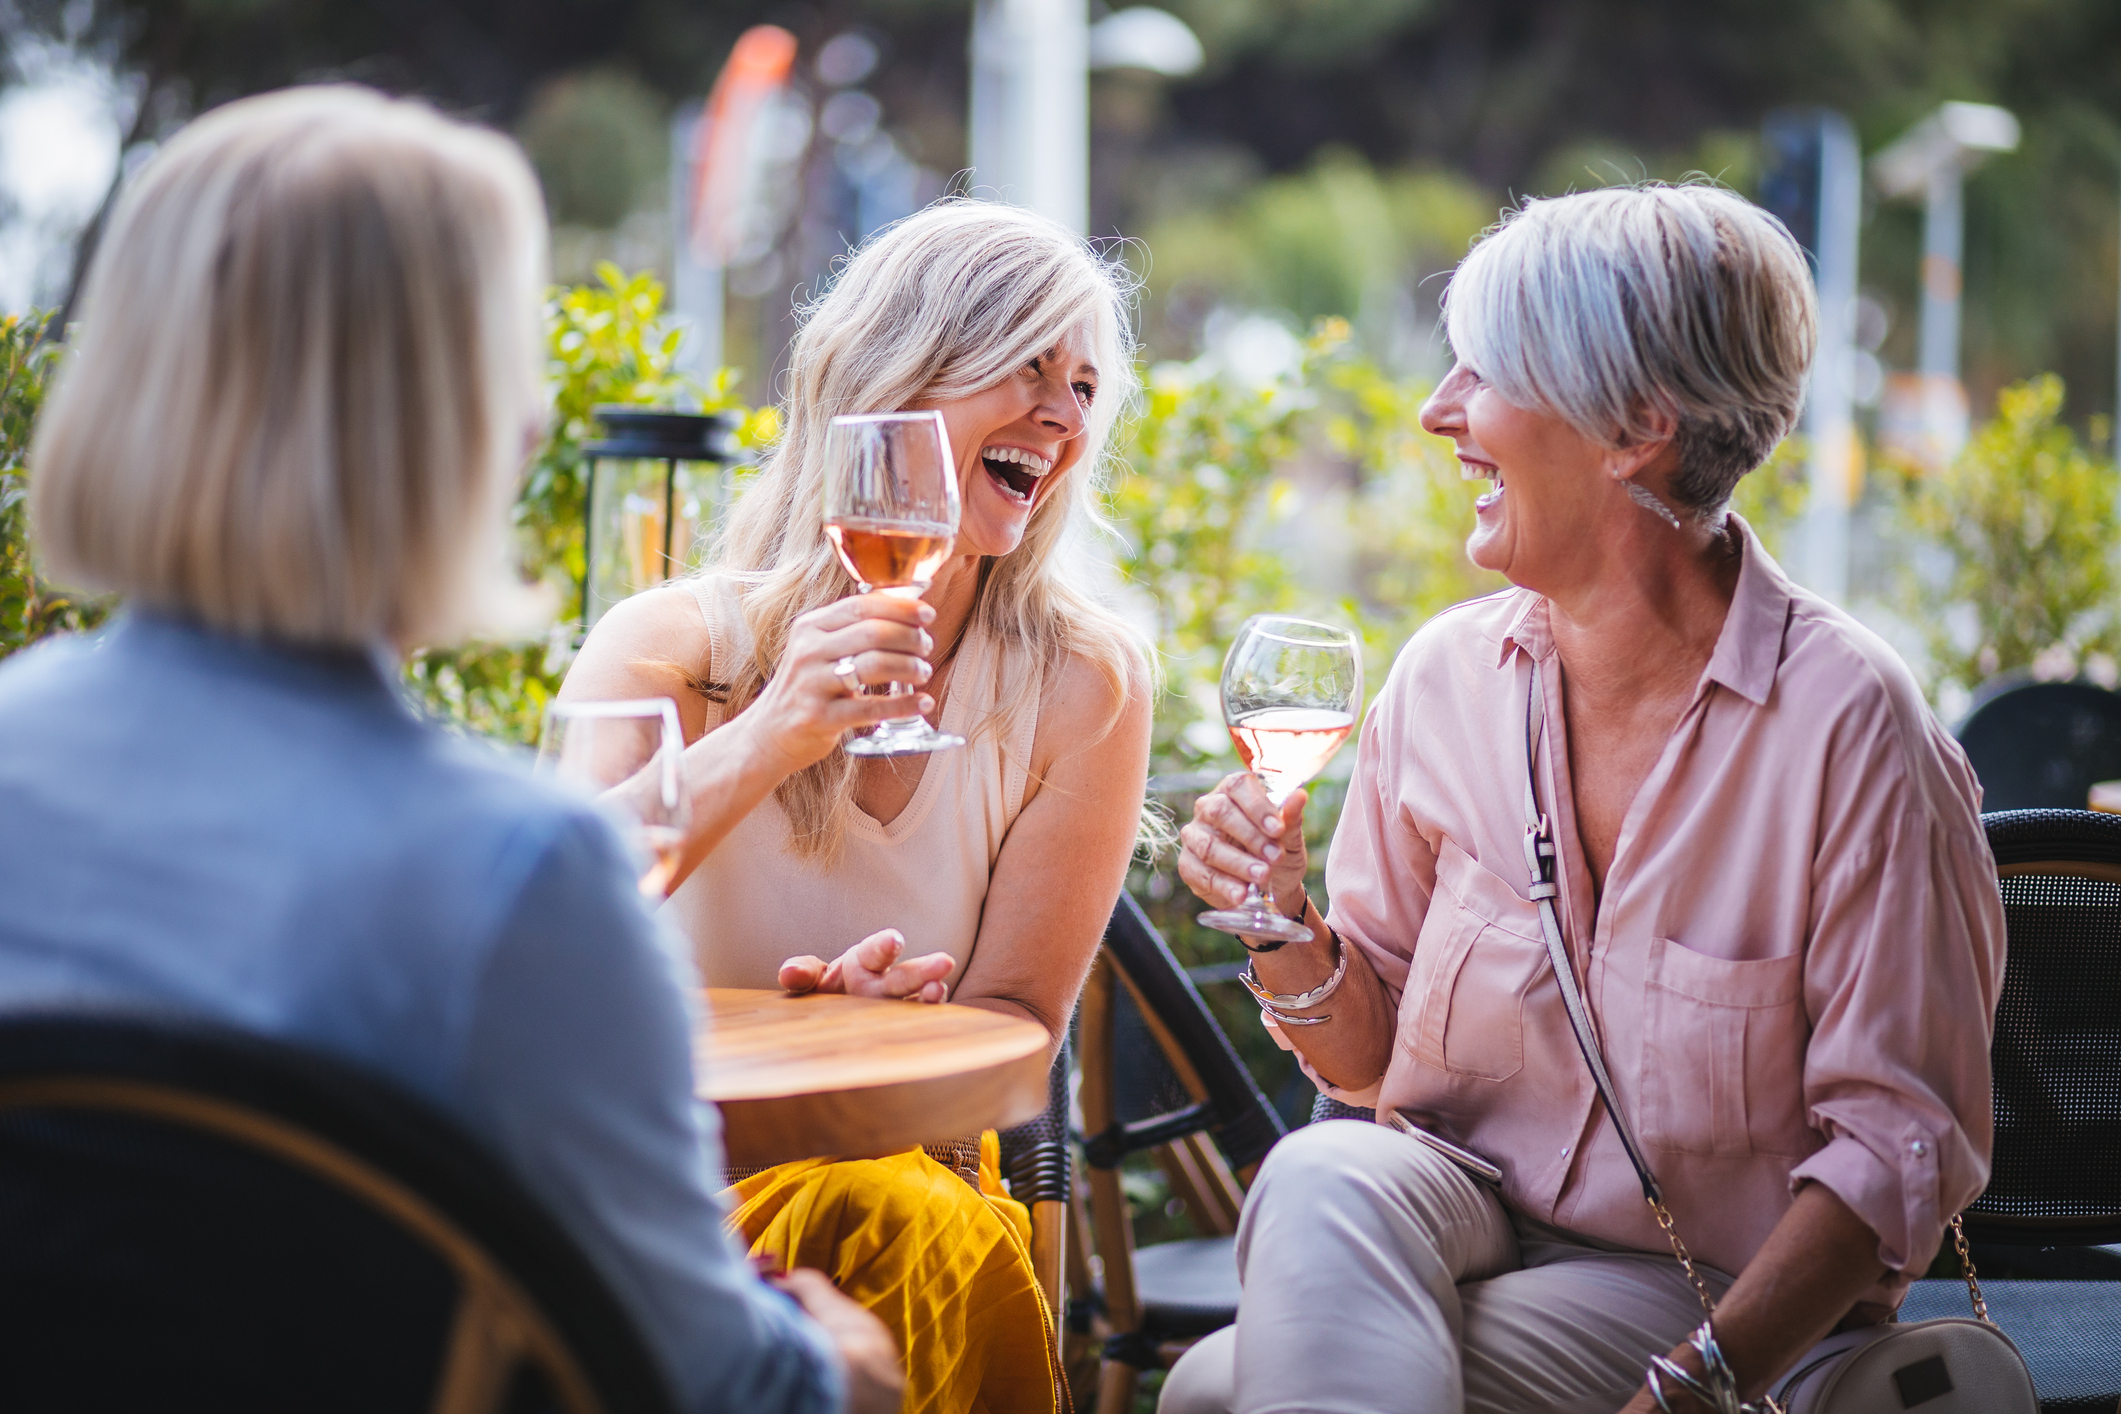 With a low cost of living and a slew of activities to choose from, Sioux City is rated #8 on the list of  Best Cities for Older Americans in Retirement .